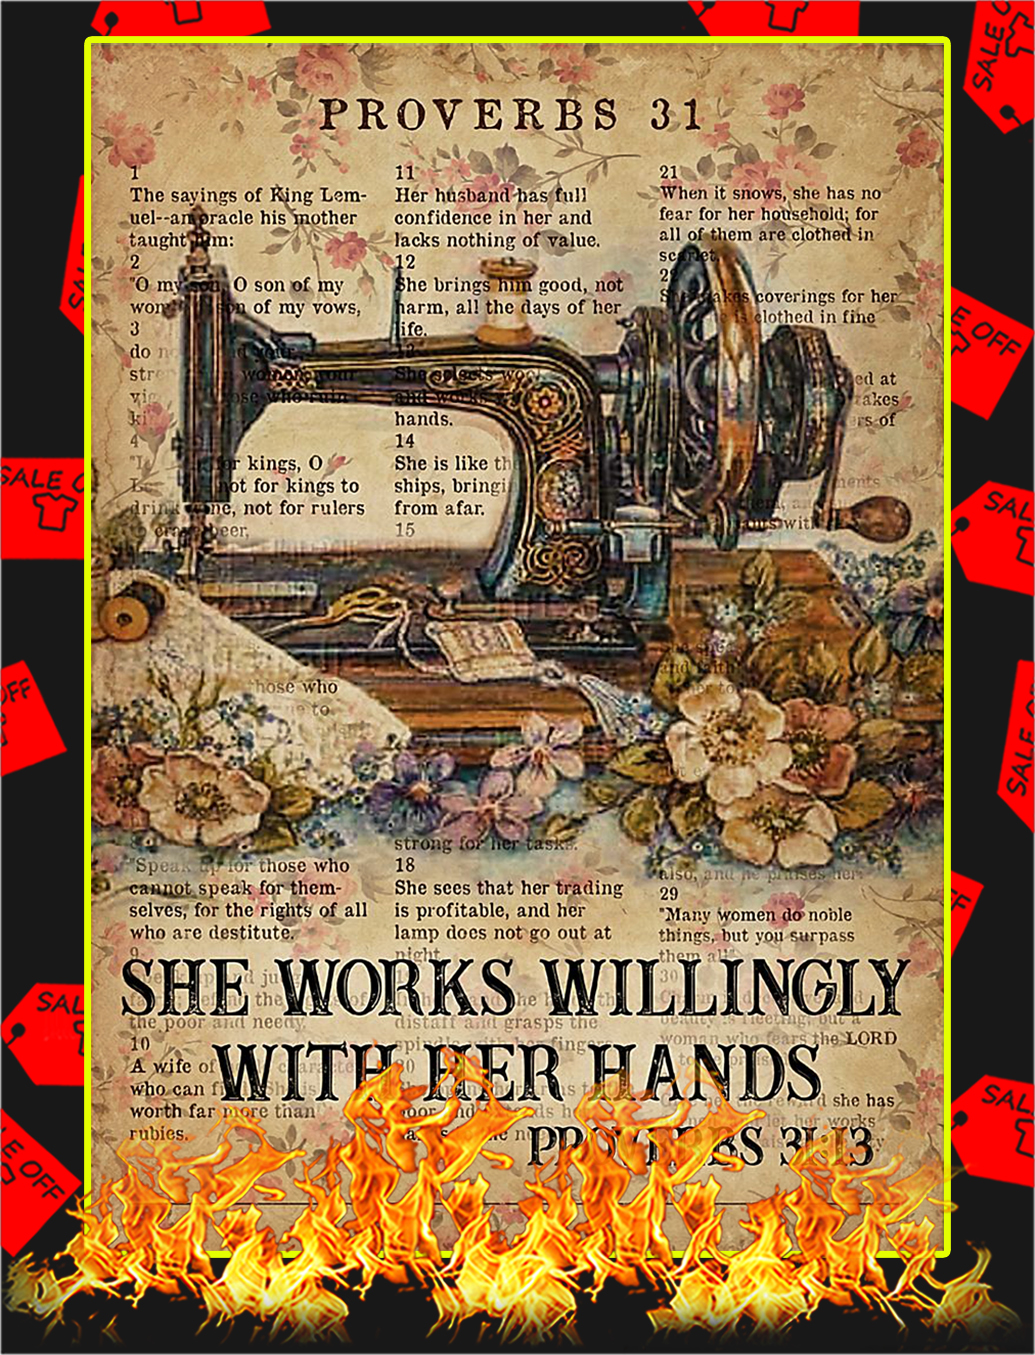 Sewing Proverbs 31 she works willingly with her hands poster - A4